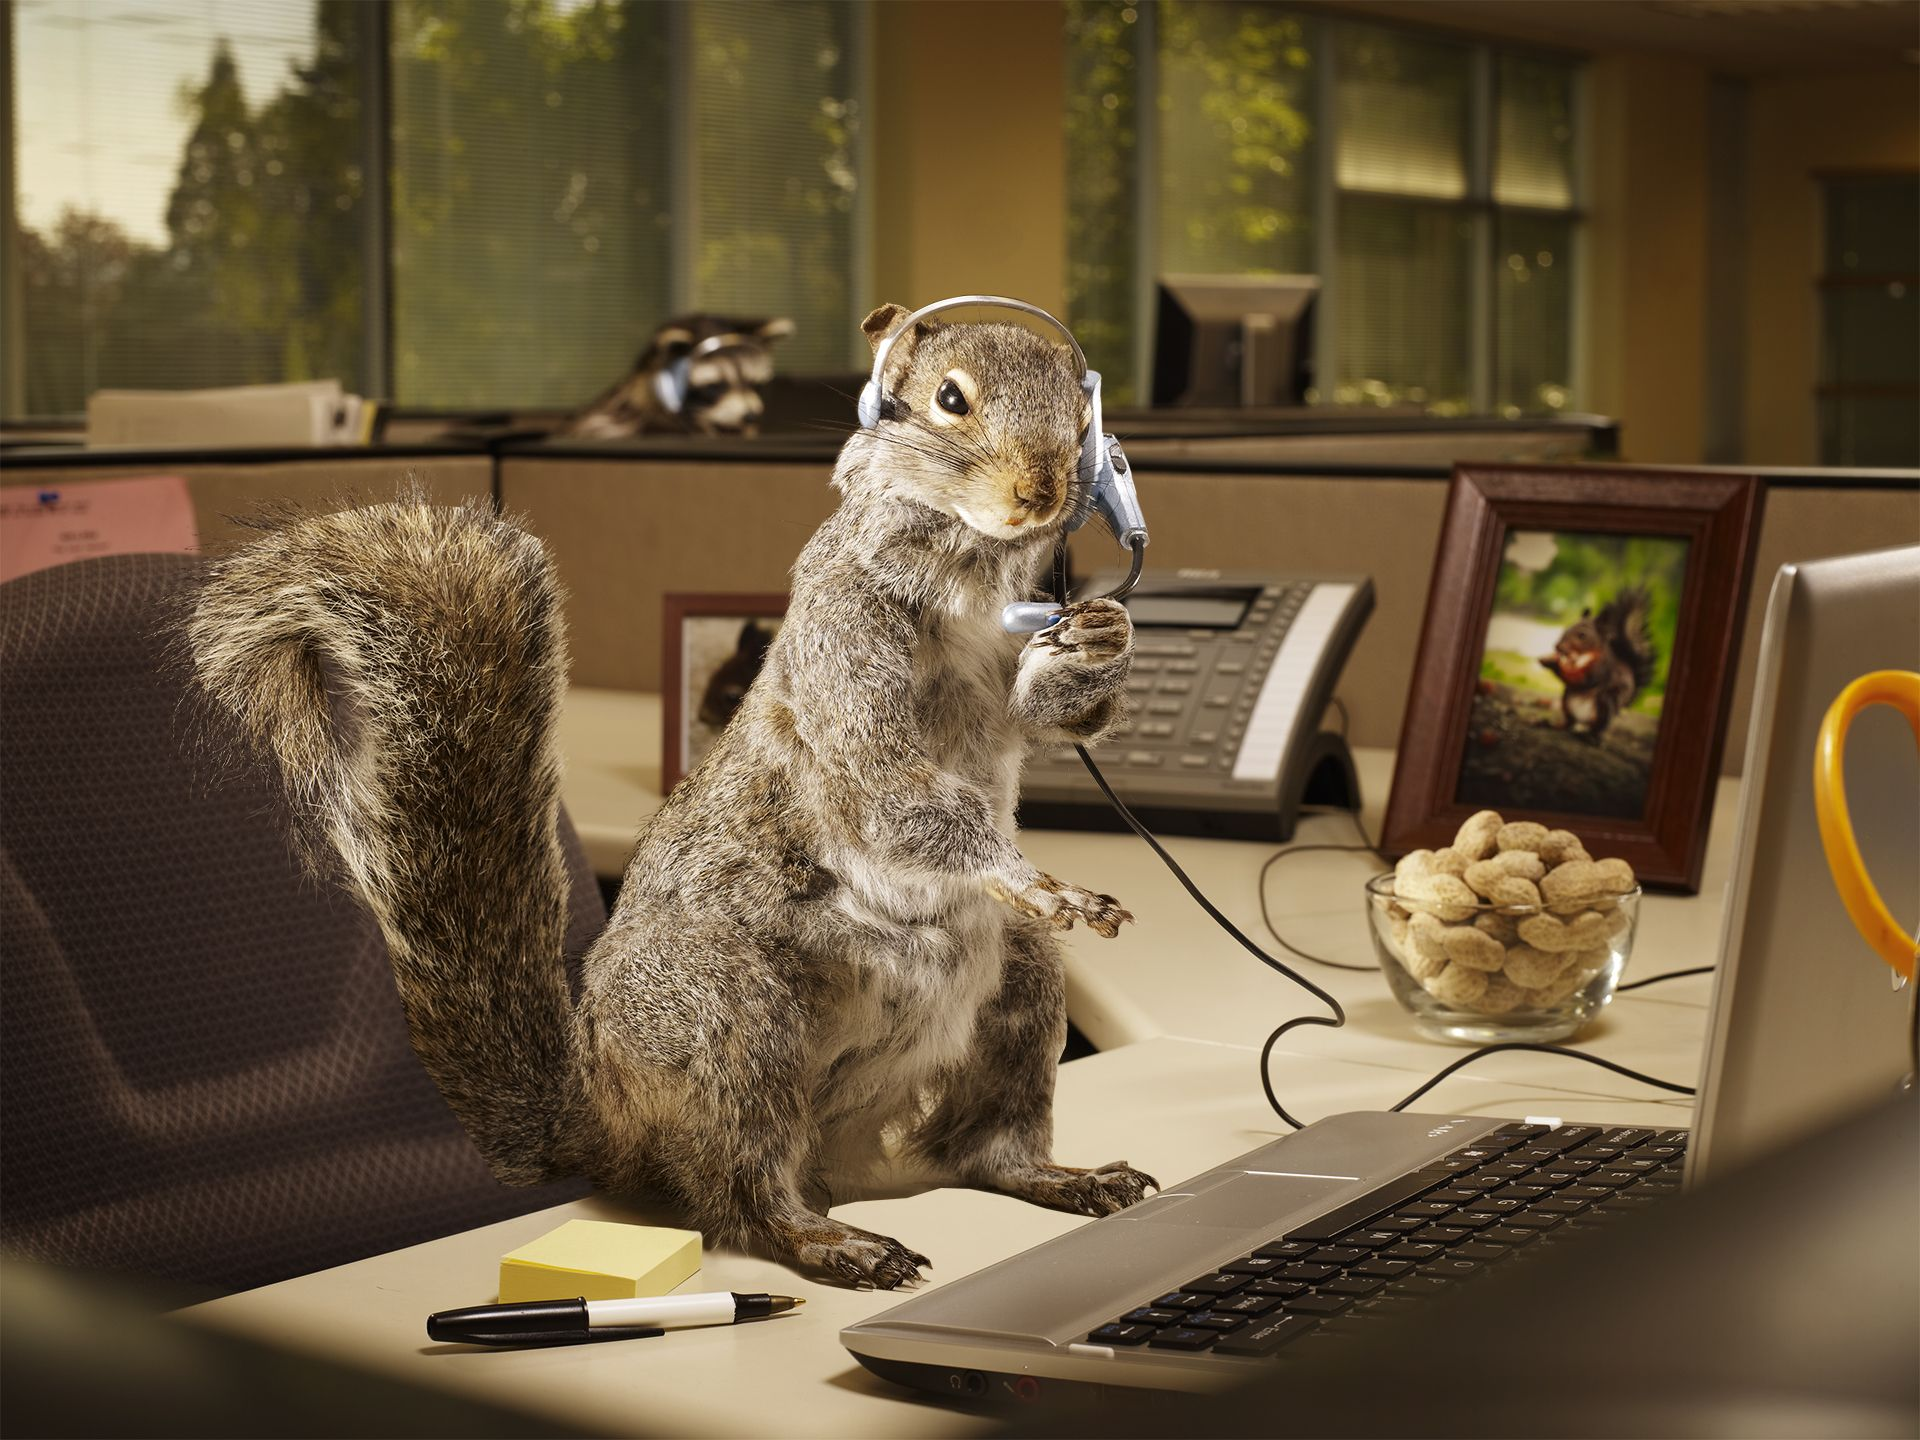 Another Day at the Office Squirrel, Lion sculpture, Cartoon